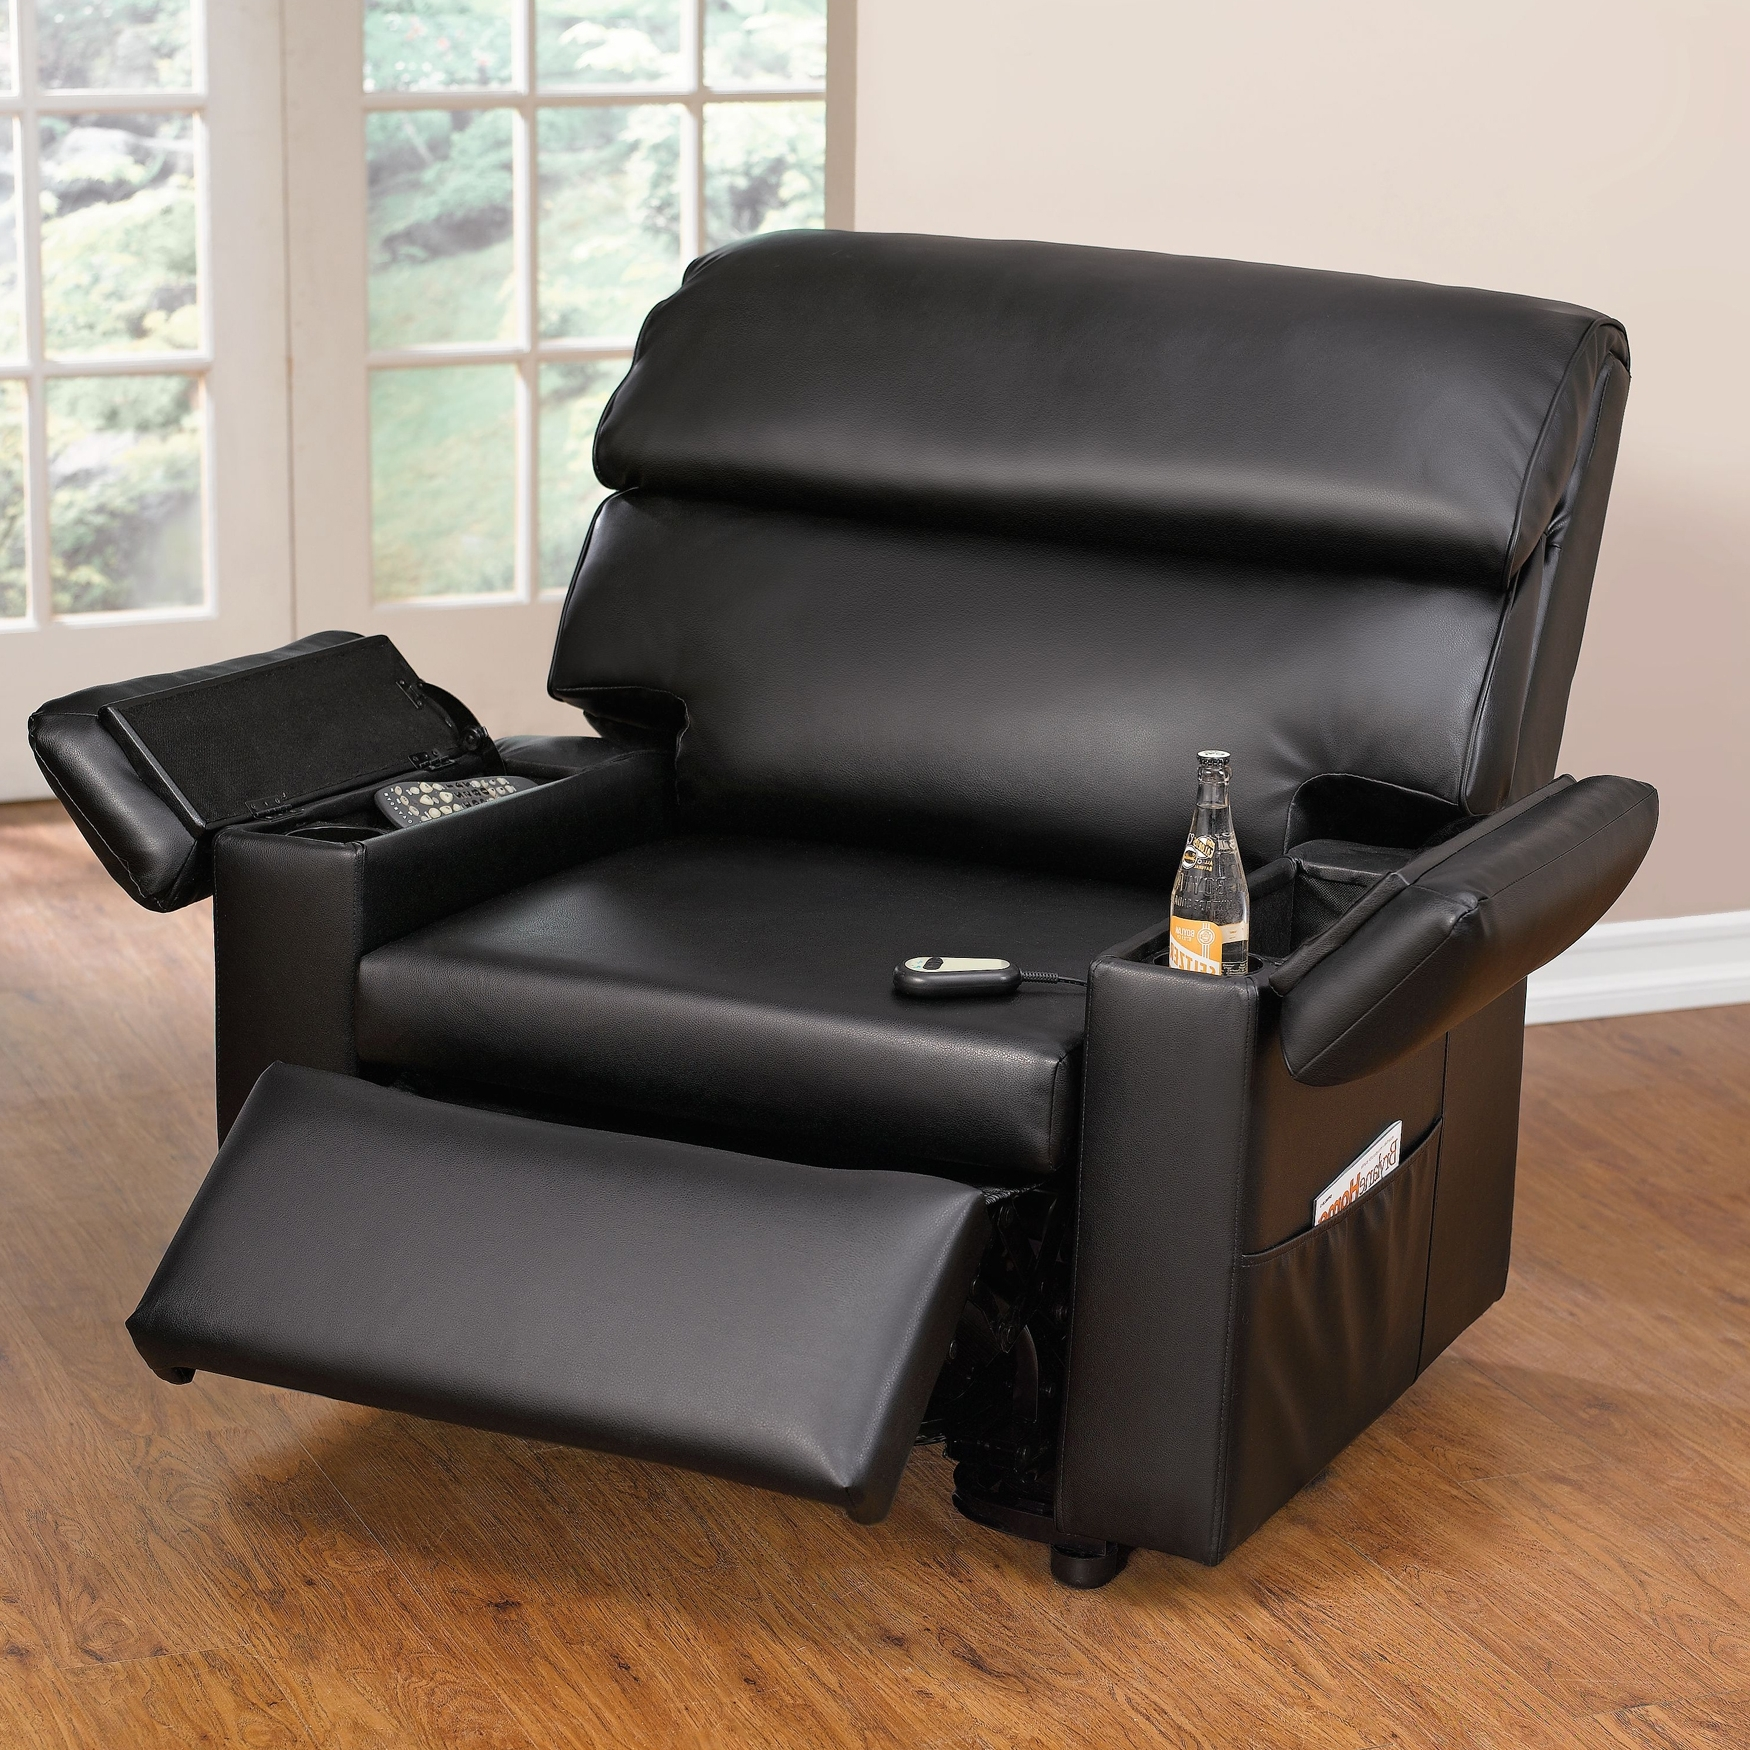 2019 Wide Sofa Chairs For Extra Wide Leather Look Power Lift Chair With Storage Arms (View 1 of 20)